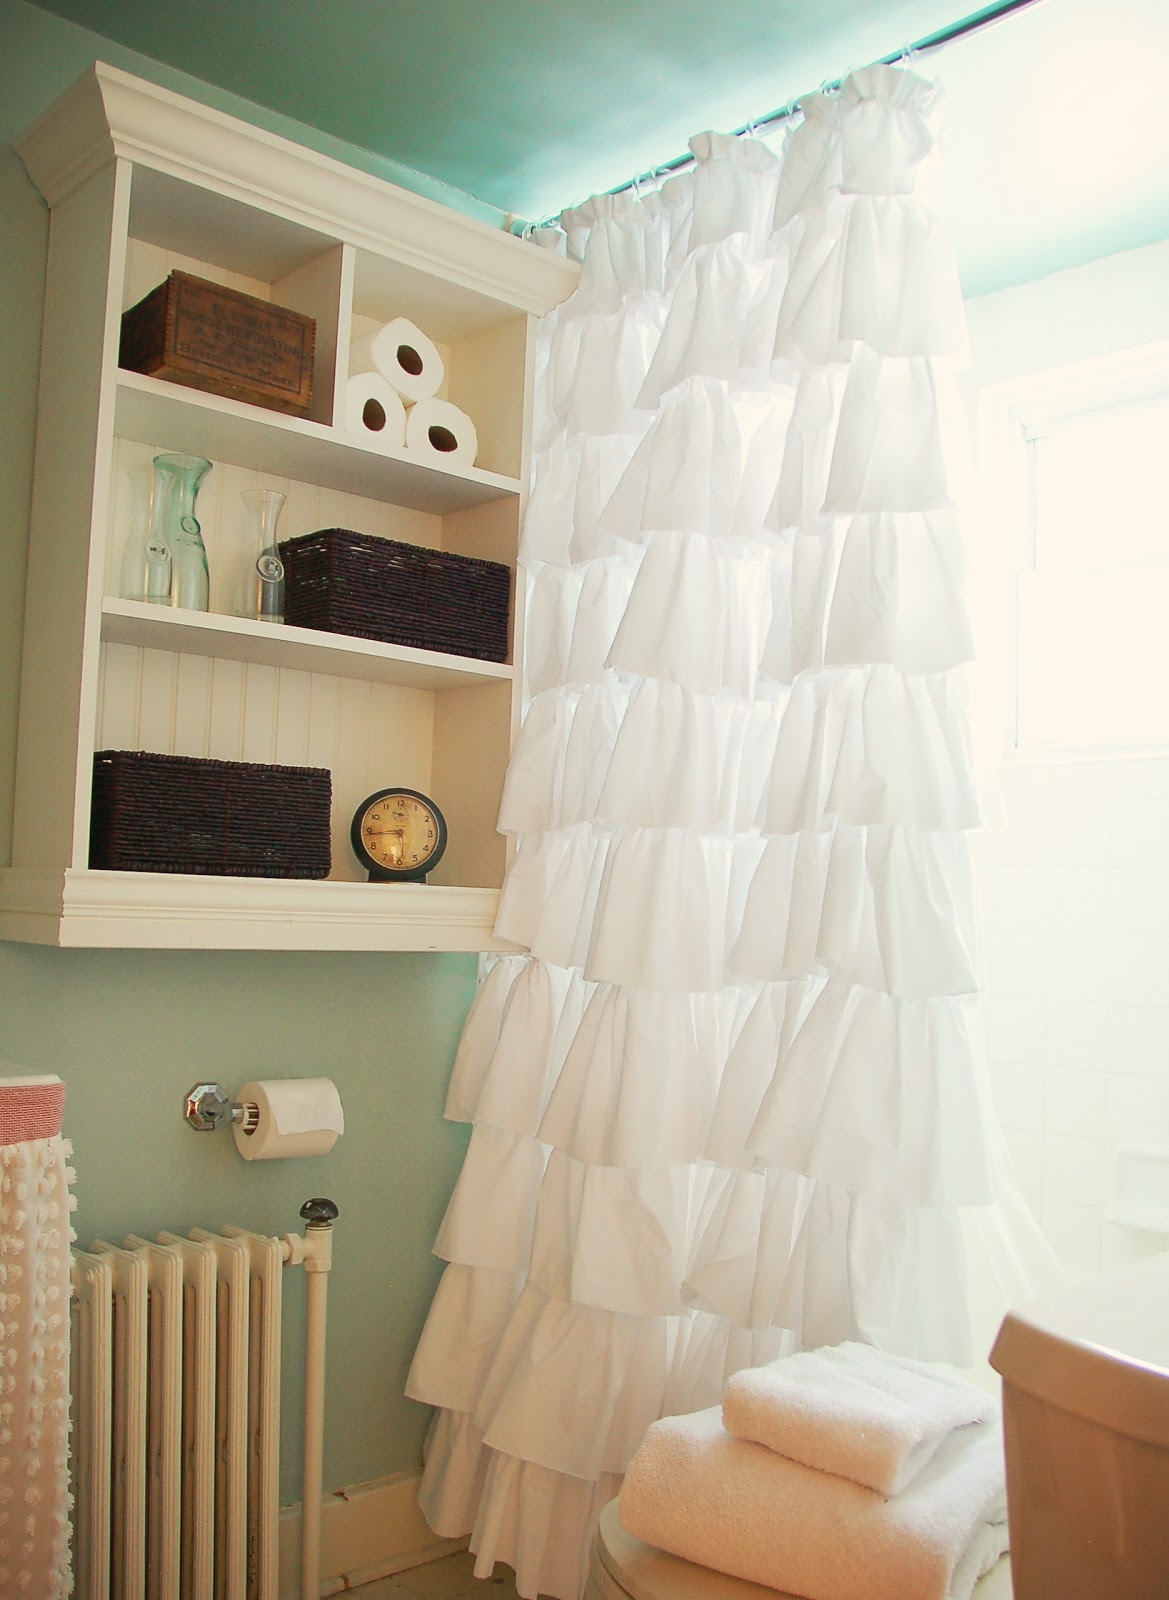 http://3.bp.blogspot.com/-LJQbeZnRRdg/TaOZt1EpF-I/AAAAAAAAH5o/qFONRbULkyk/s1600/Ruffled%20Shower%20Curtain%20-%20Beauty%20Shot%201.jpg